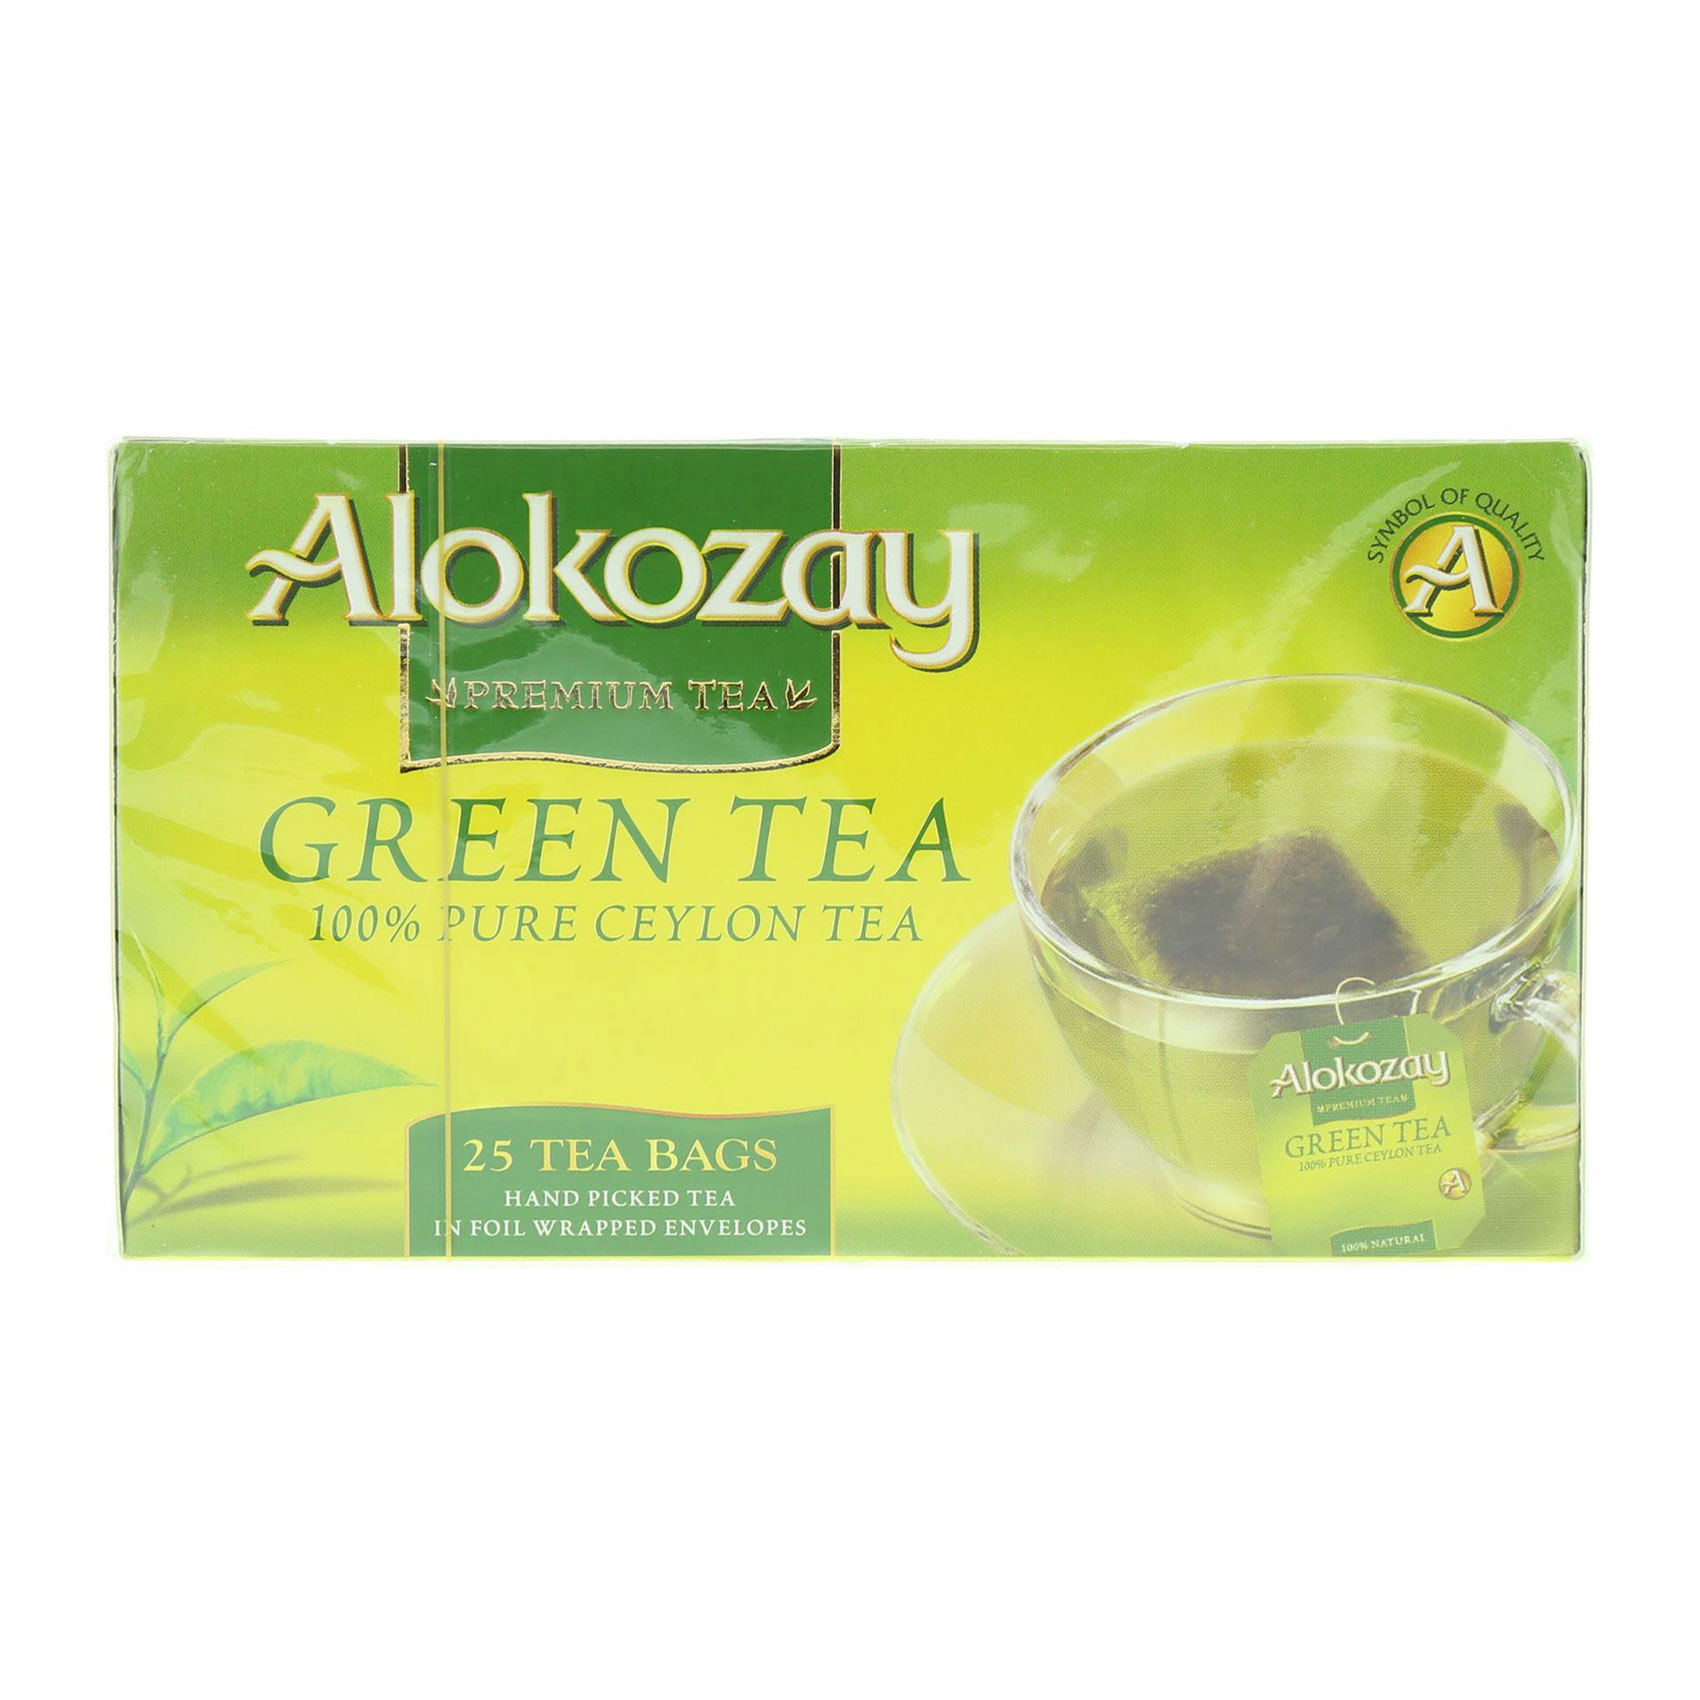 ALOKOZAY GREEN TEA BAGS 25'S 50G